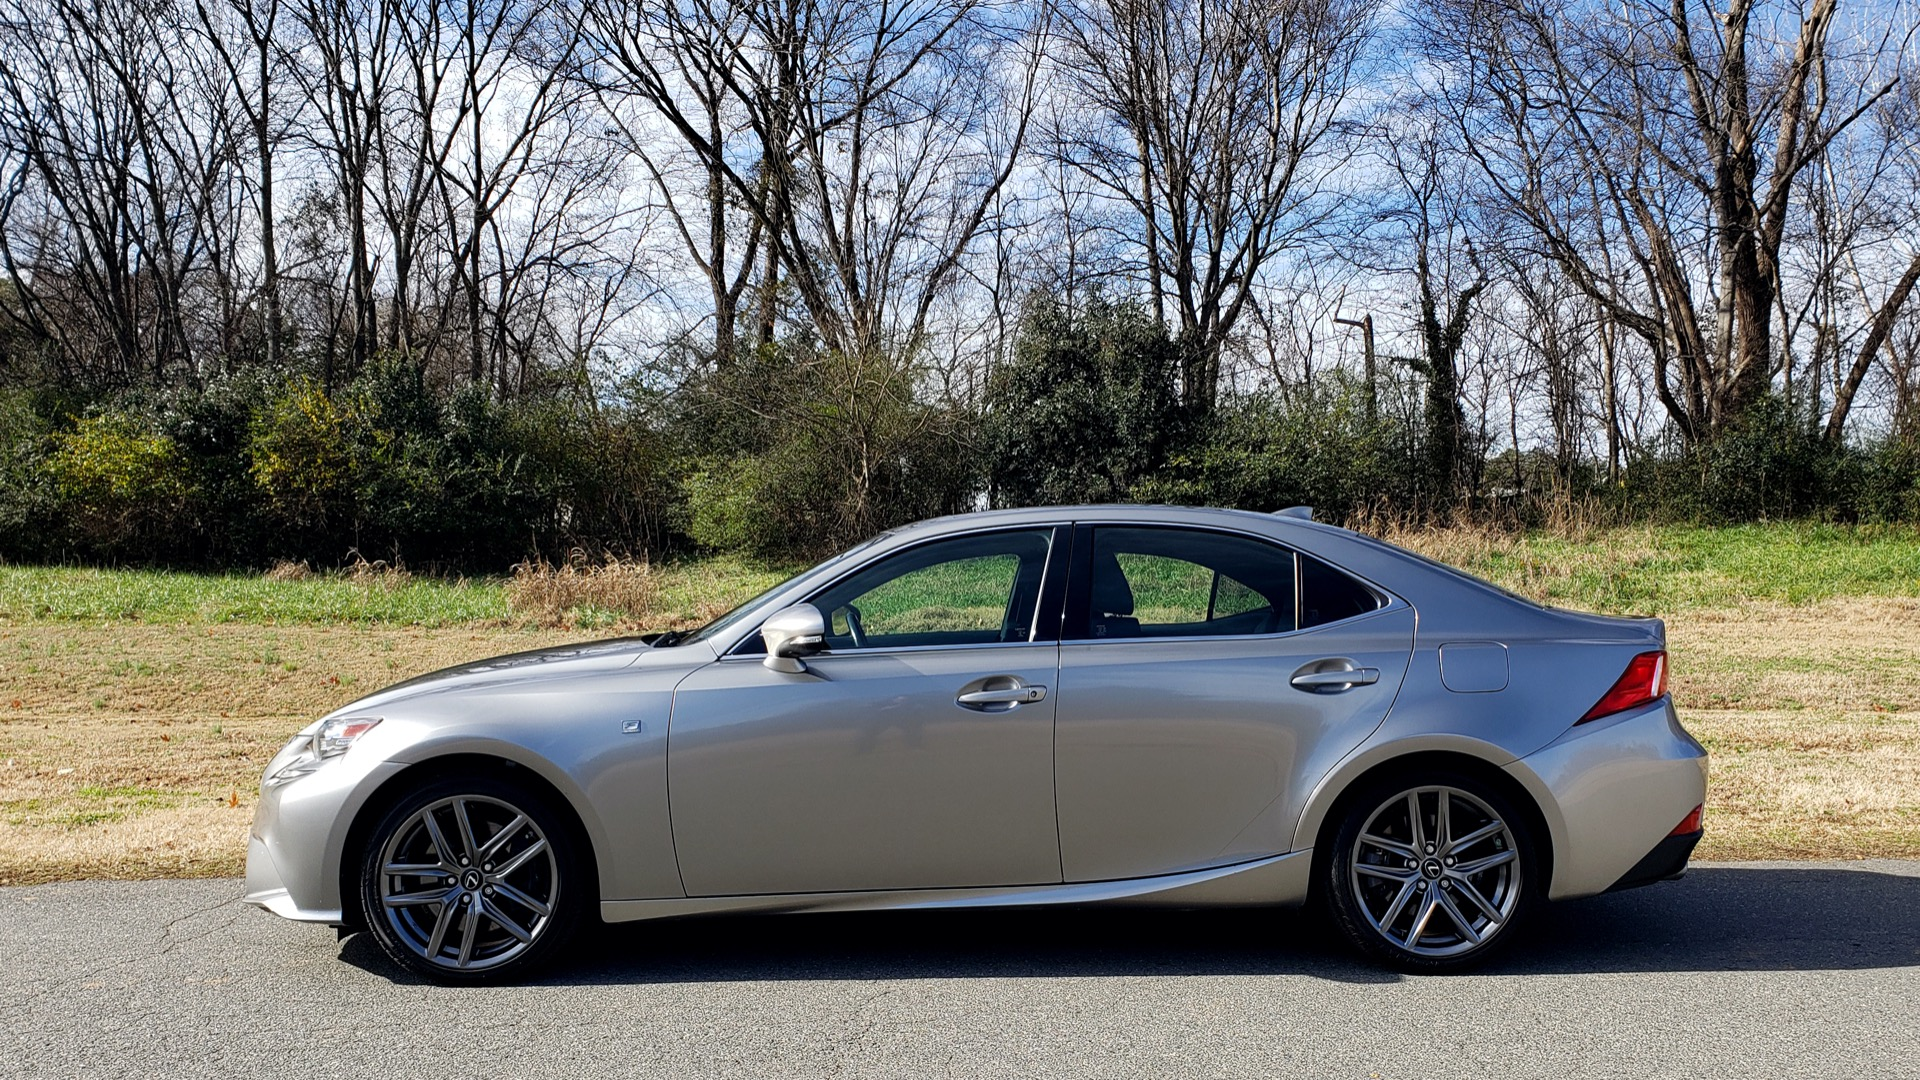 Used 2016 Lexus IS 200t F-SPORT / SUNROOF / NAV / BSM / DYNAMIC RADAR CRUISE for sale Sold at Formula Imports in Charlotte NC 28227 2